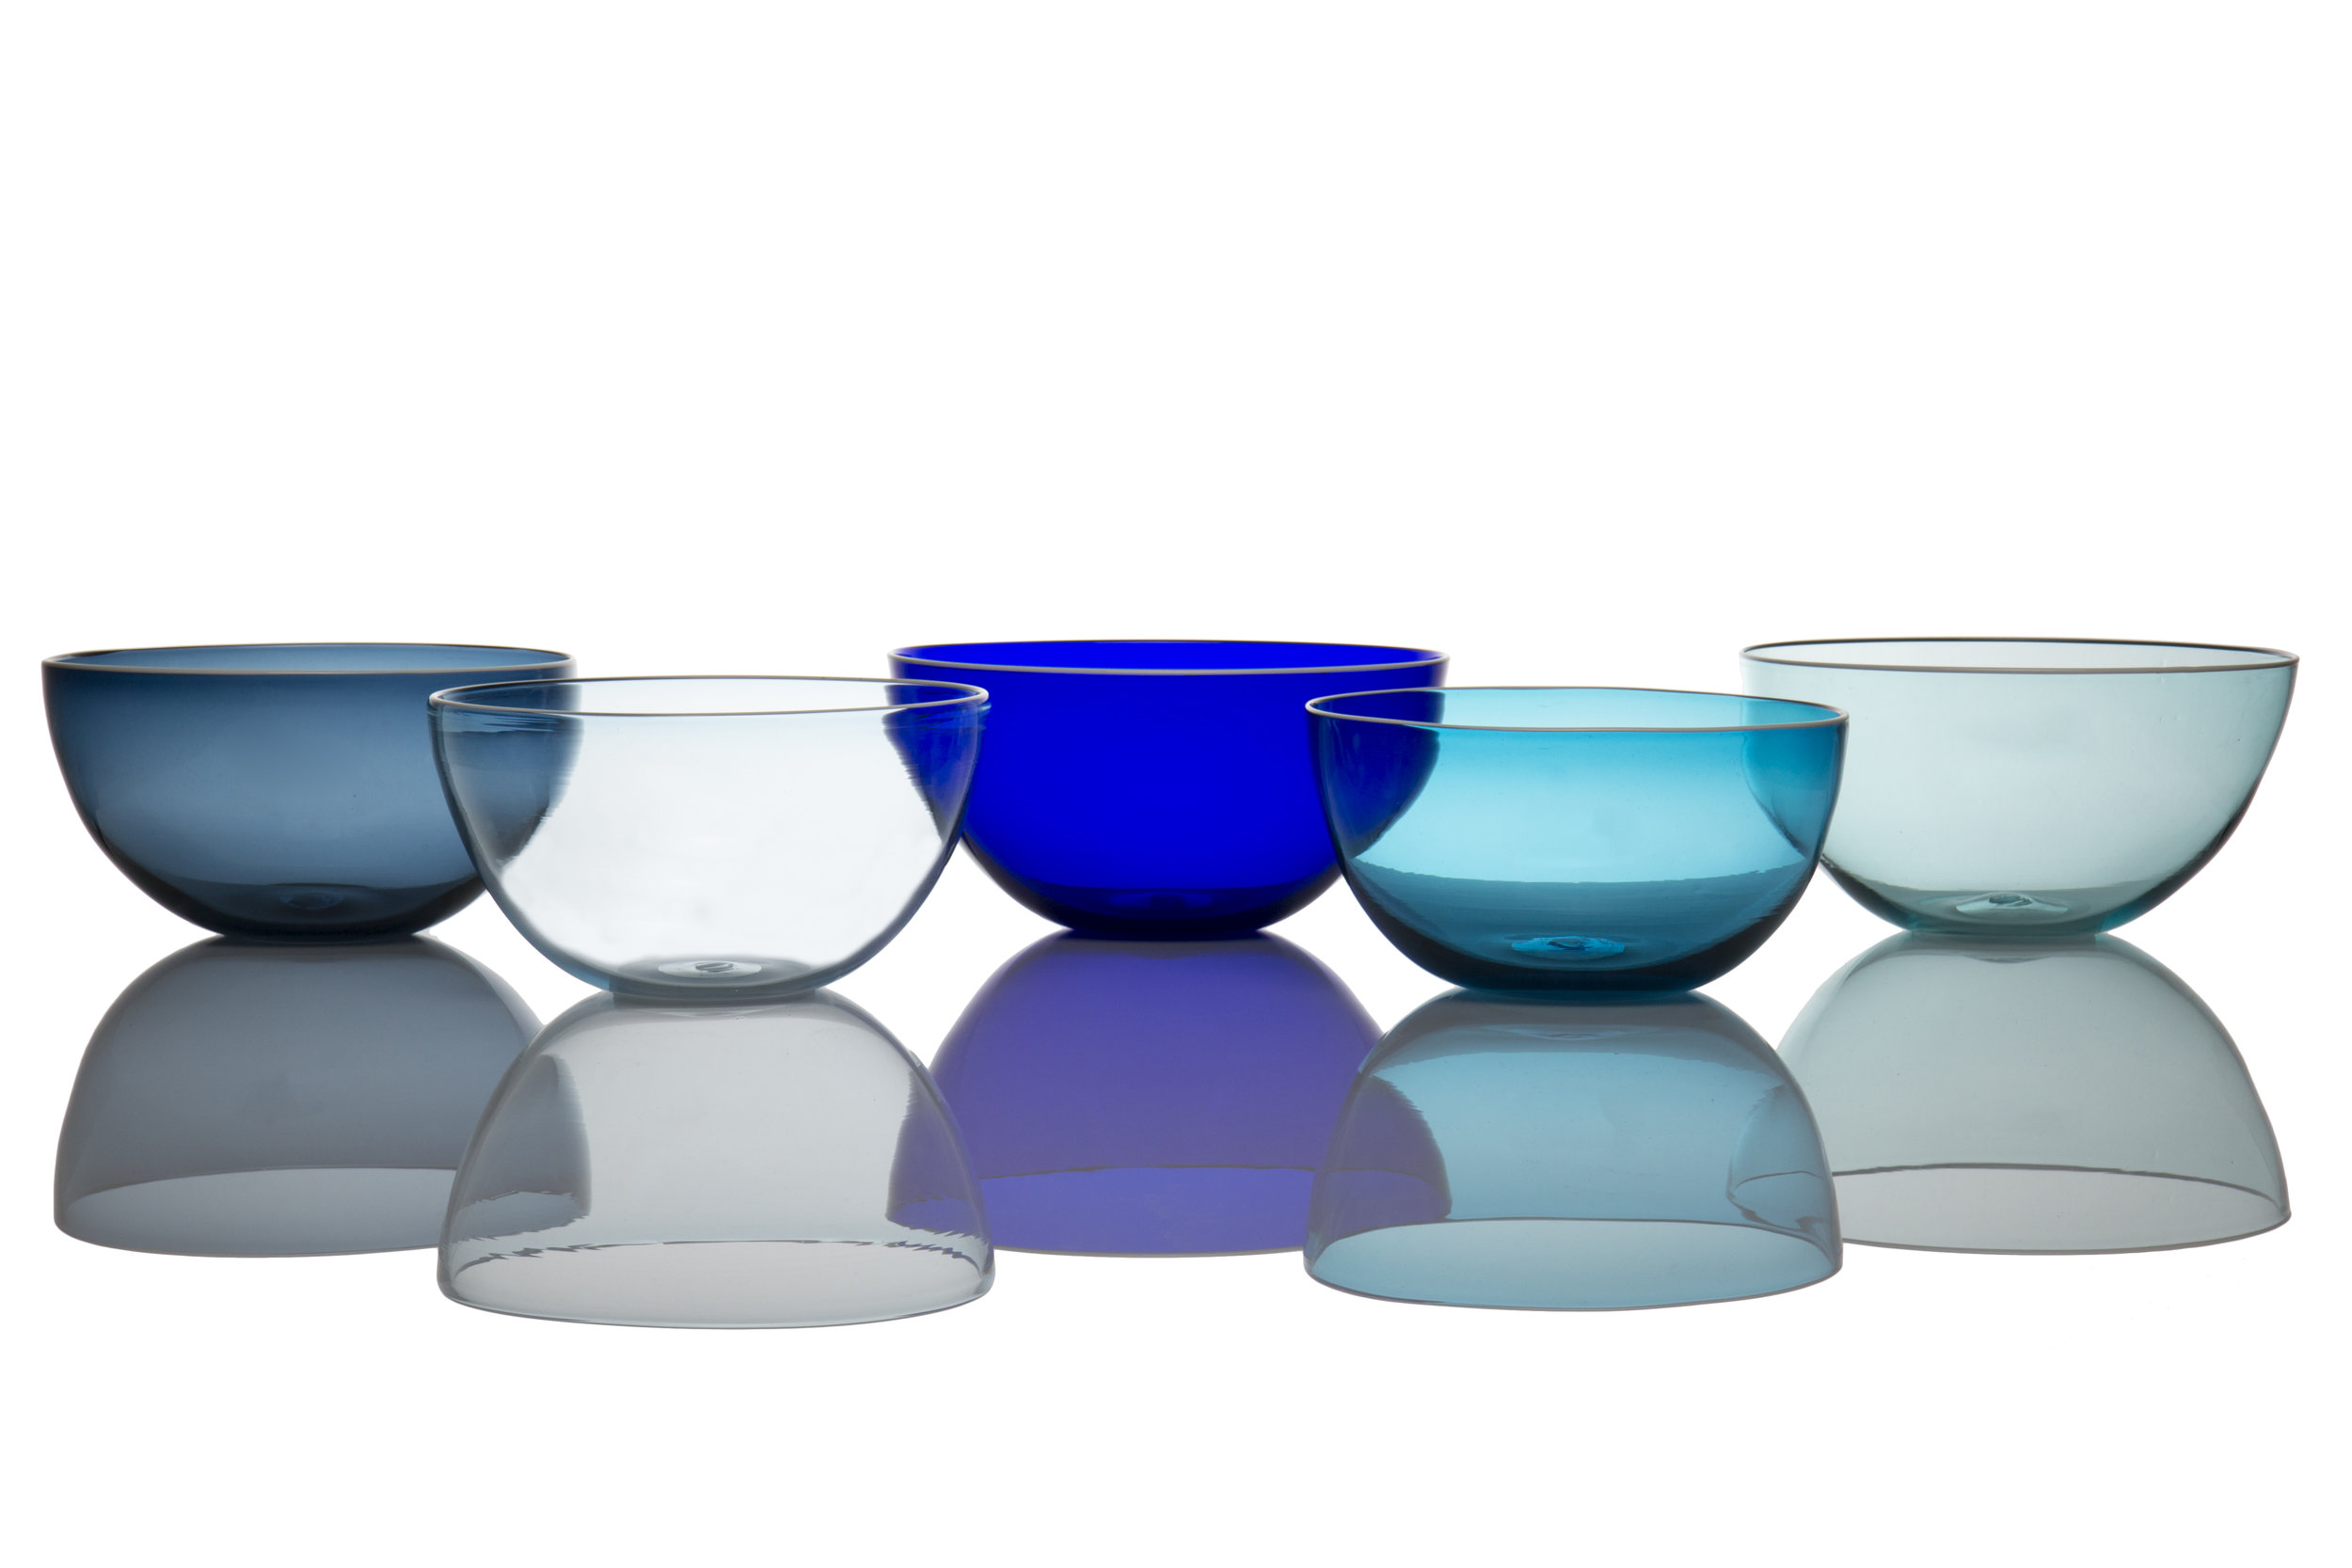 Colors from left to right: Steel Blue, Light Blue, Dark Blue, Aquamarine, and Copper Blue.